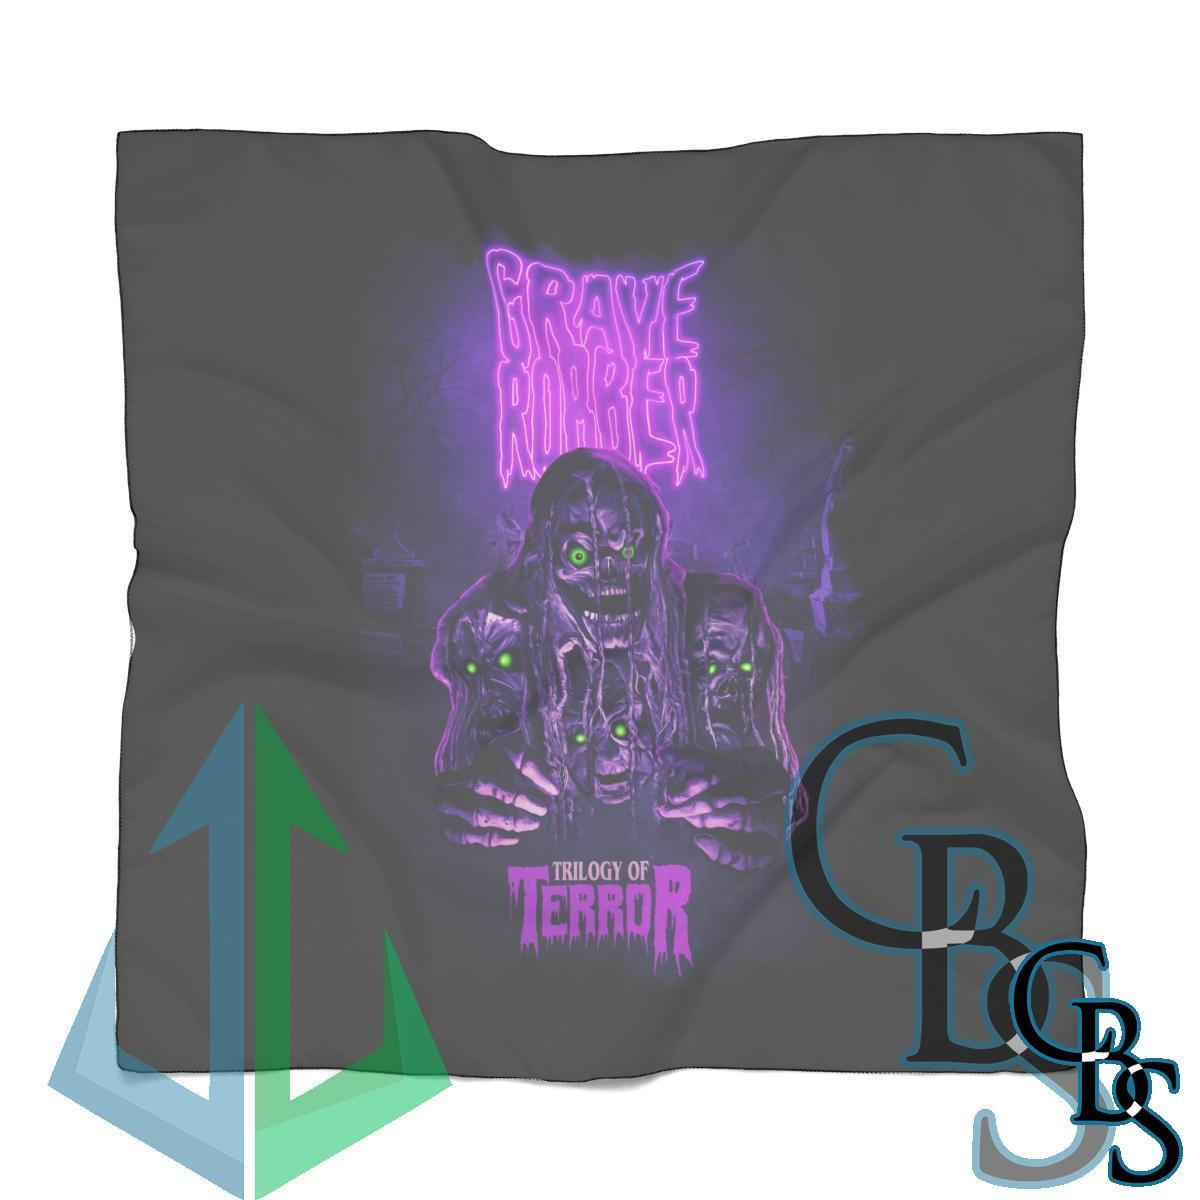 Grave Robber – Trilogy of Terror Poly Scarf